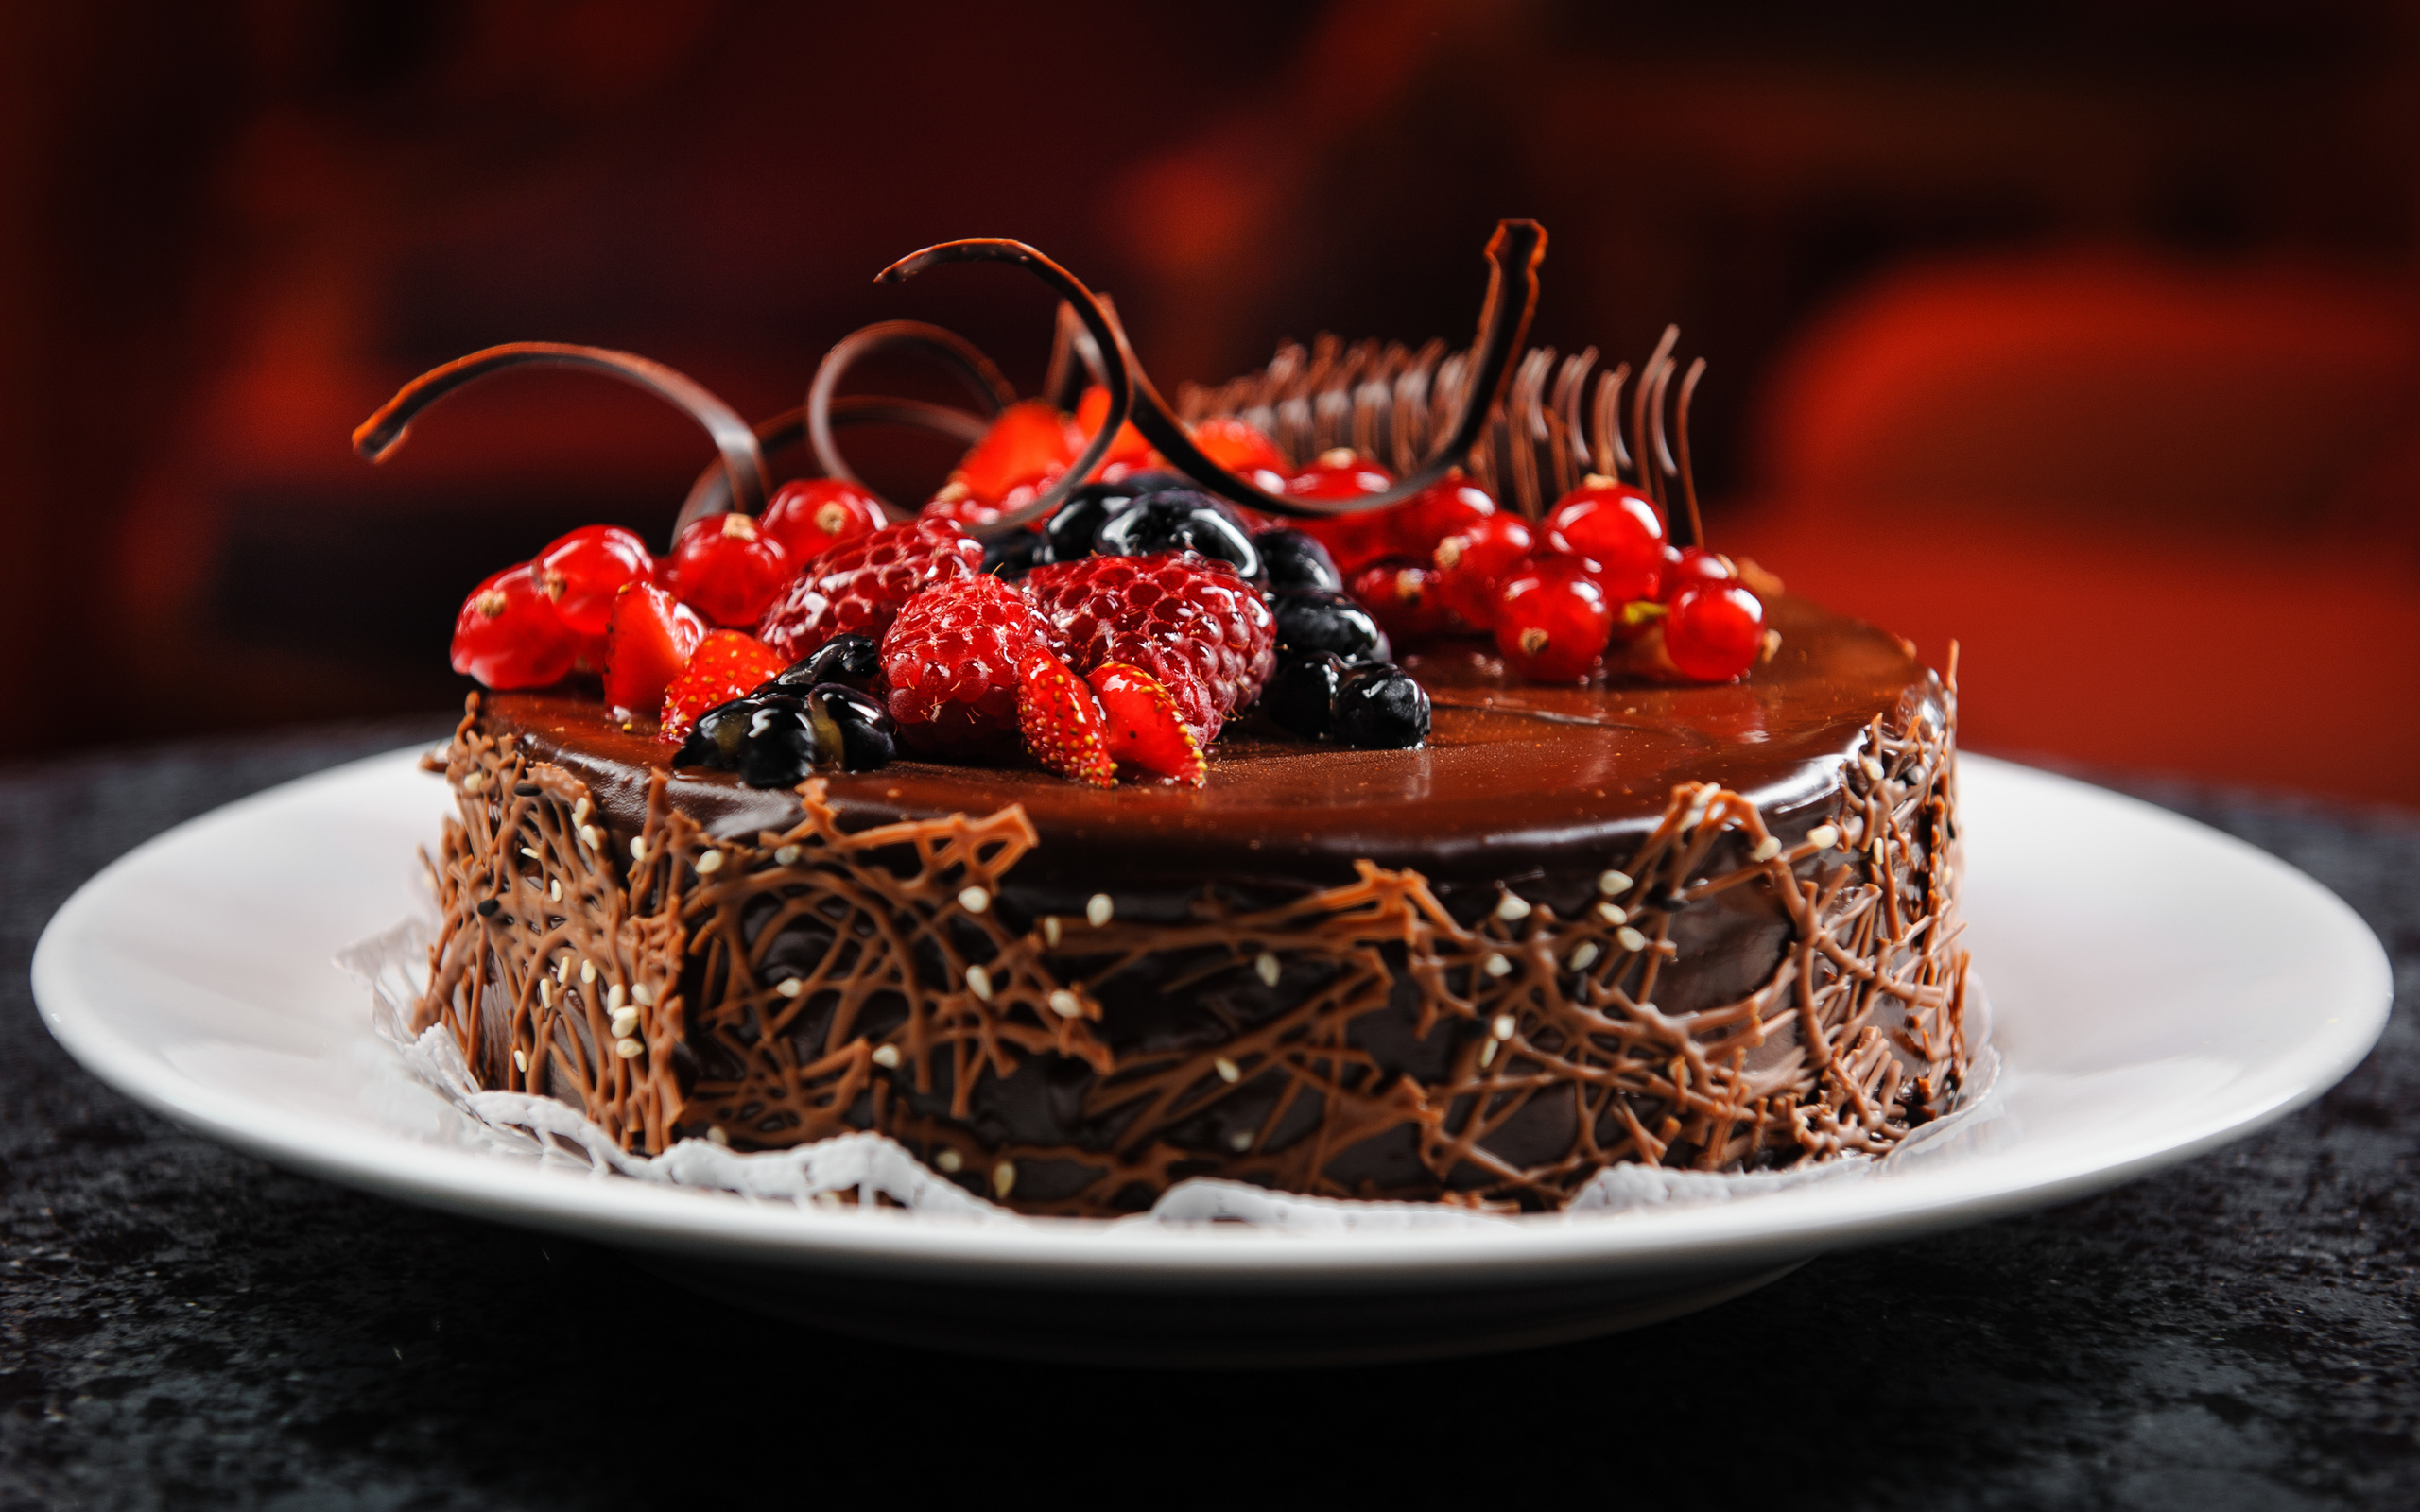 Wallpaper 3360x2100 px, cakes, colorful, food, happy